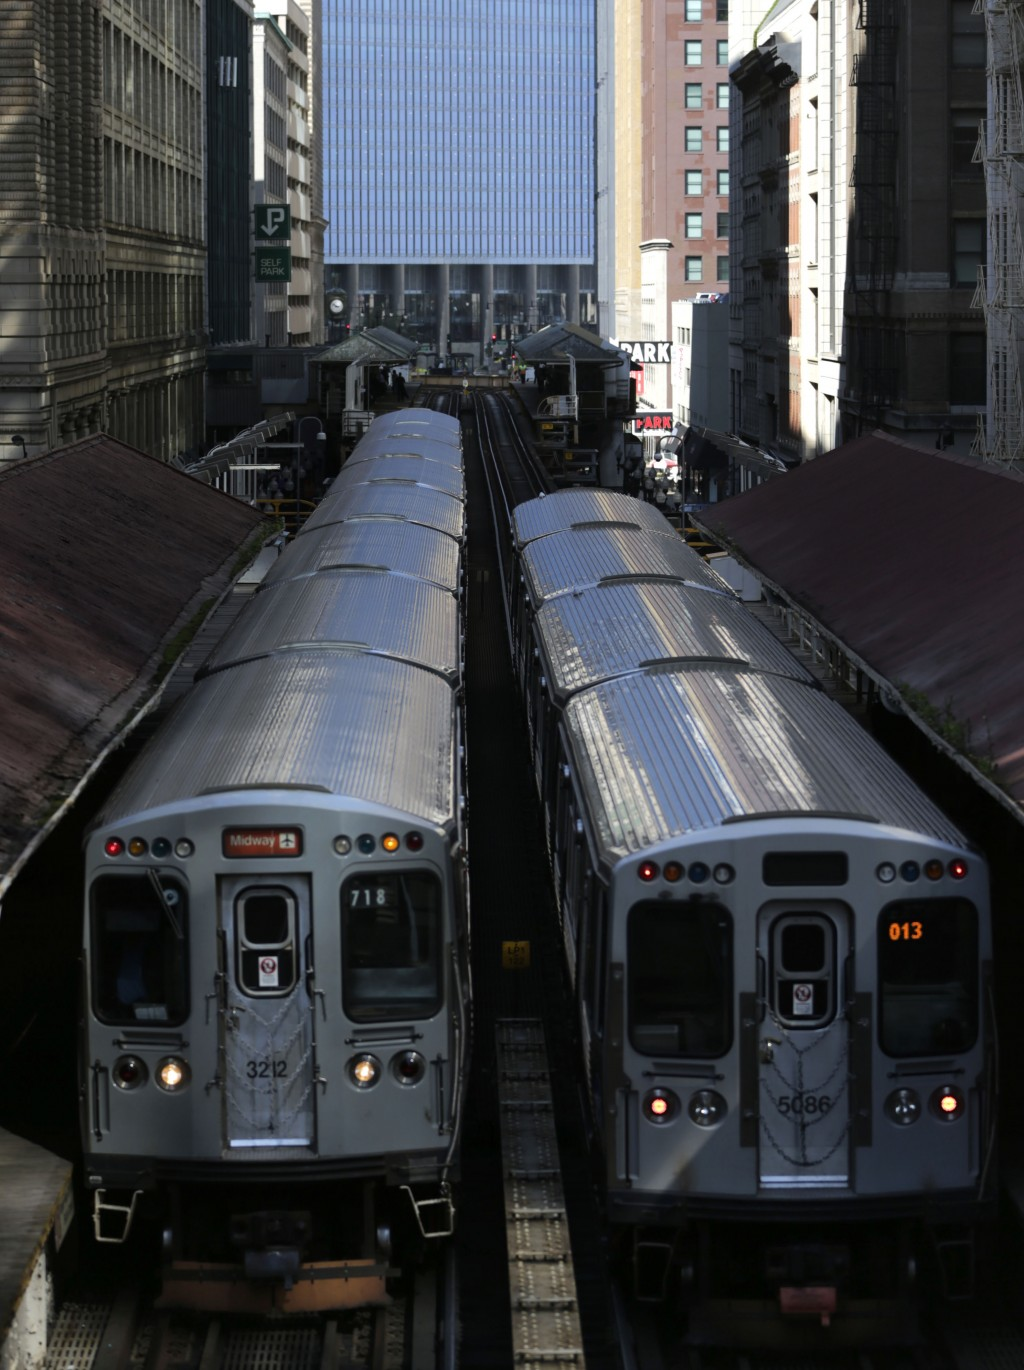 FILE - In this Sept. 17, 2014 file photo, two Chicago Transit Authority elevated trains can be seen above Wabash Avenue in Chicago's famed Loop. A spi...